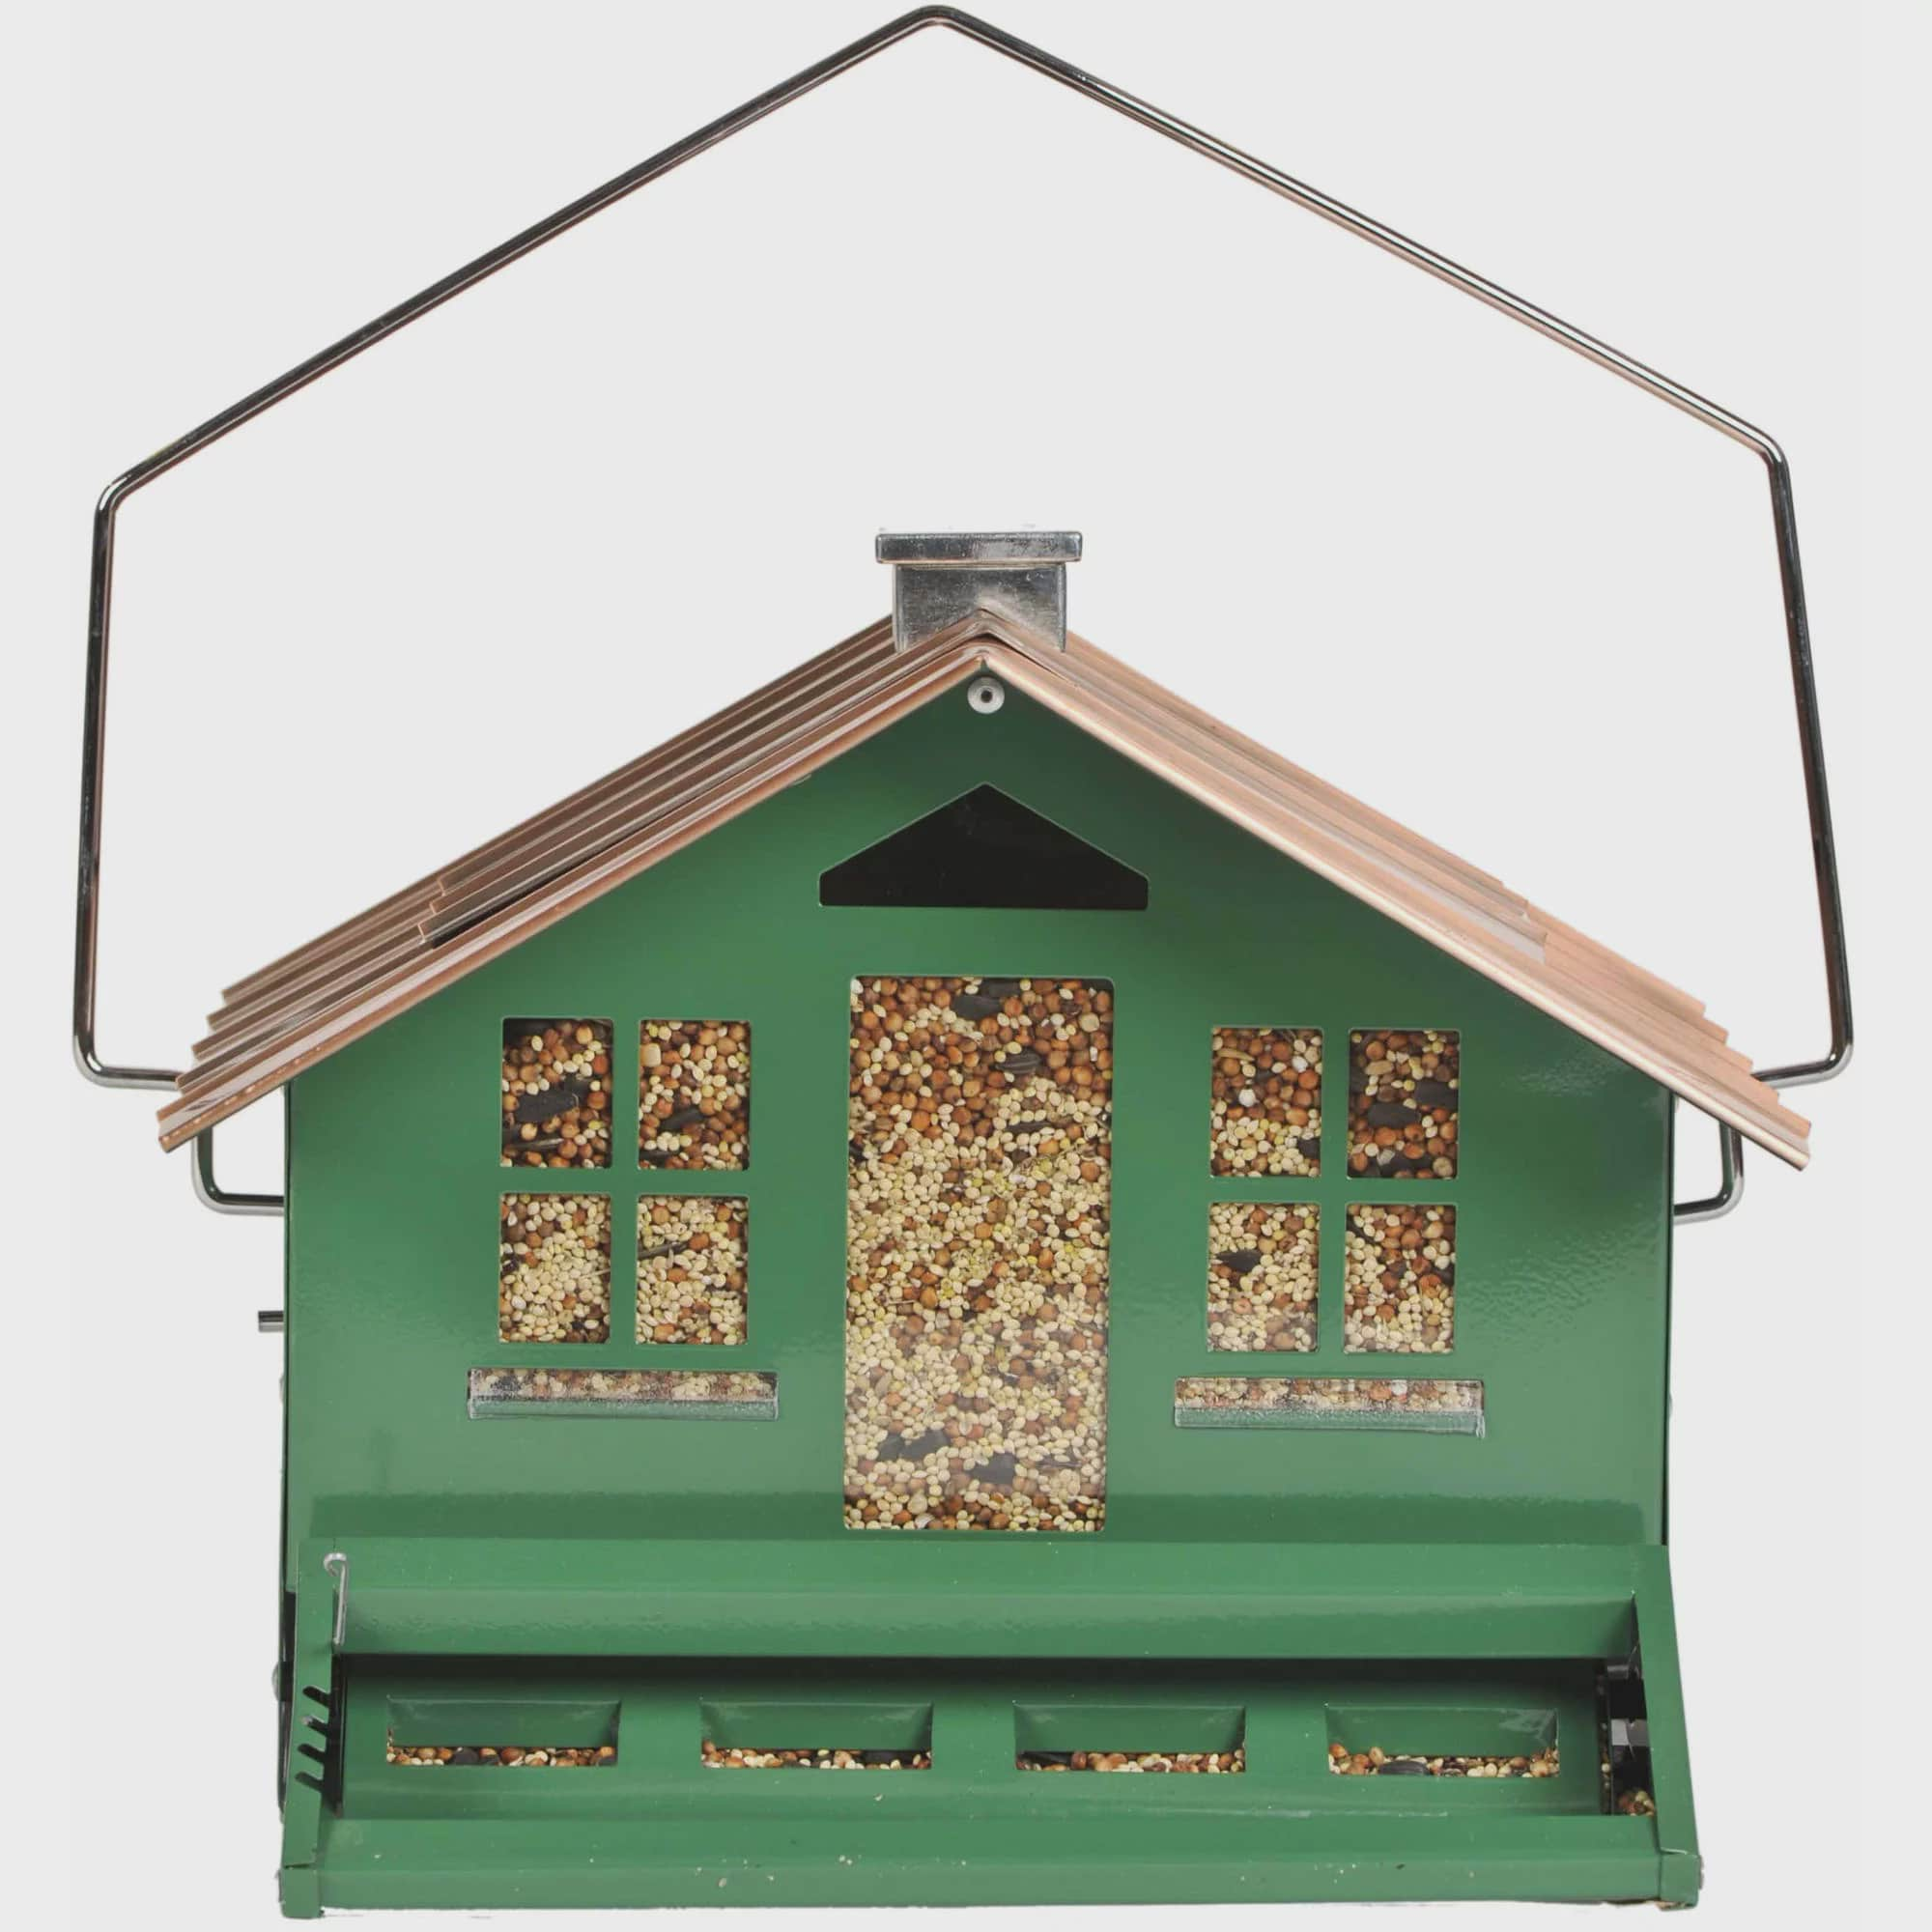 Perky-Pet Squirrel-Be-Gone II Home Style Wild Birdfeeder by Perky-Pet